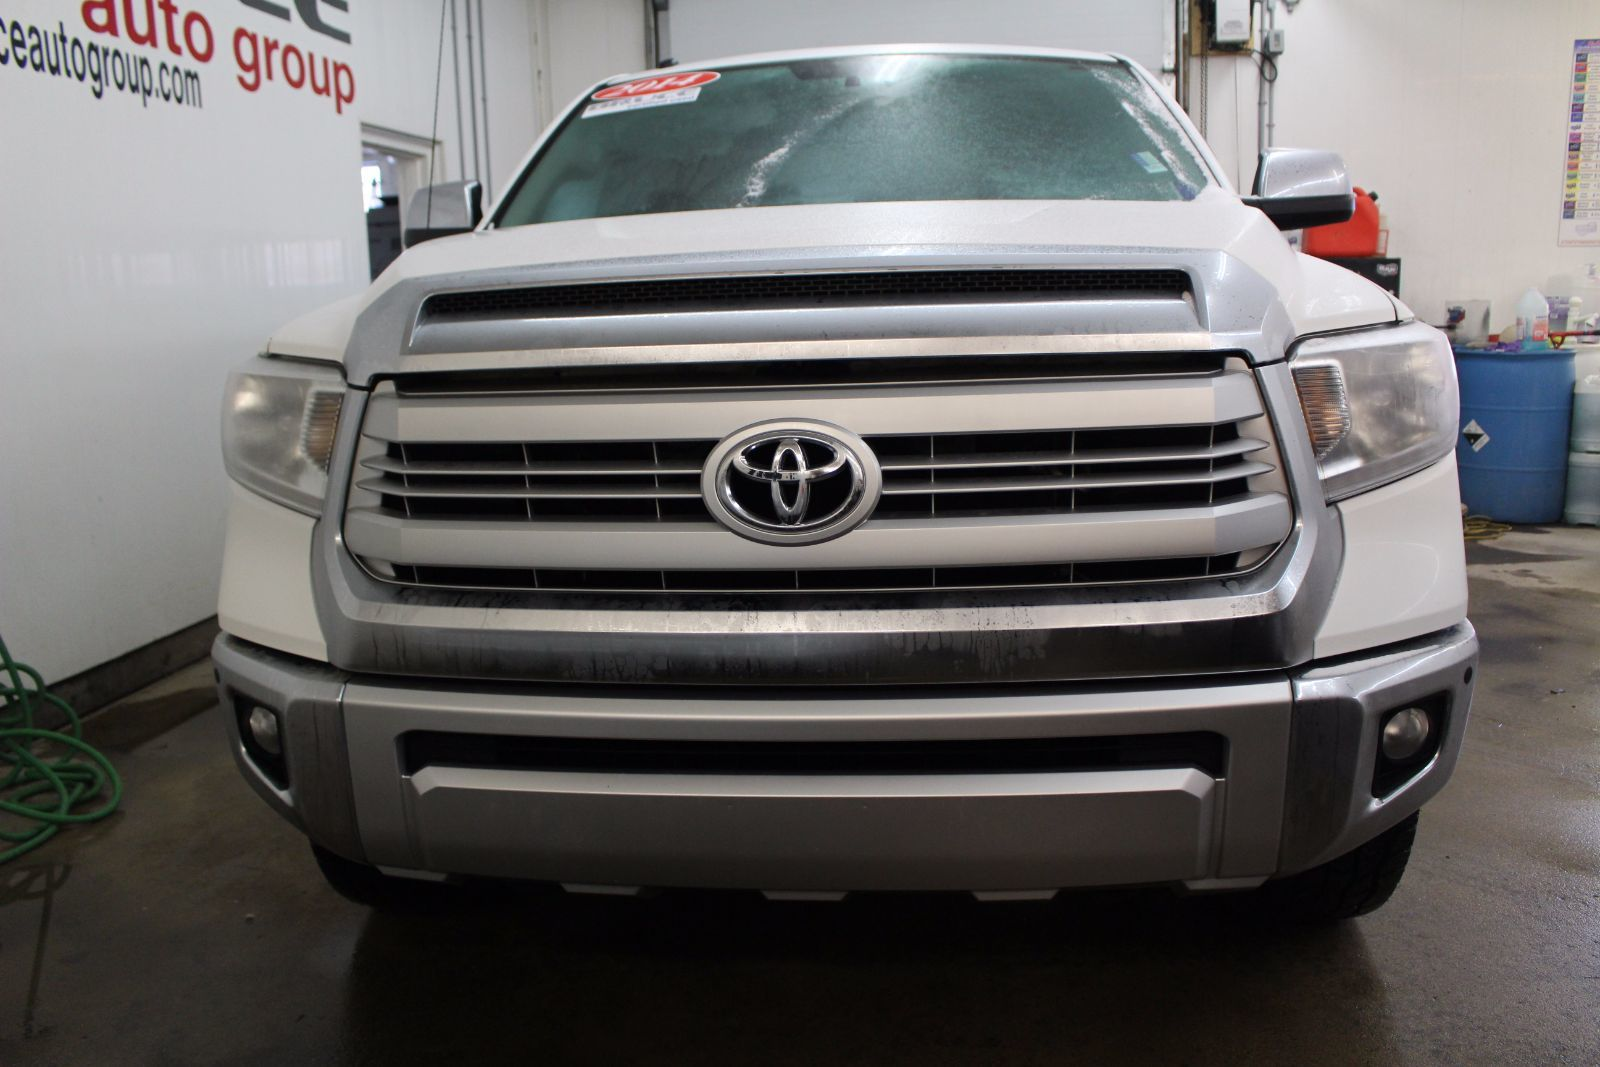 used 2014 toyota tundra limited 1794 edition 5 7l 8 cyl 4x4 crewmax in middleton yn17101a. Black Bedroom Furniture Sets. Home Design Ideas